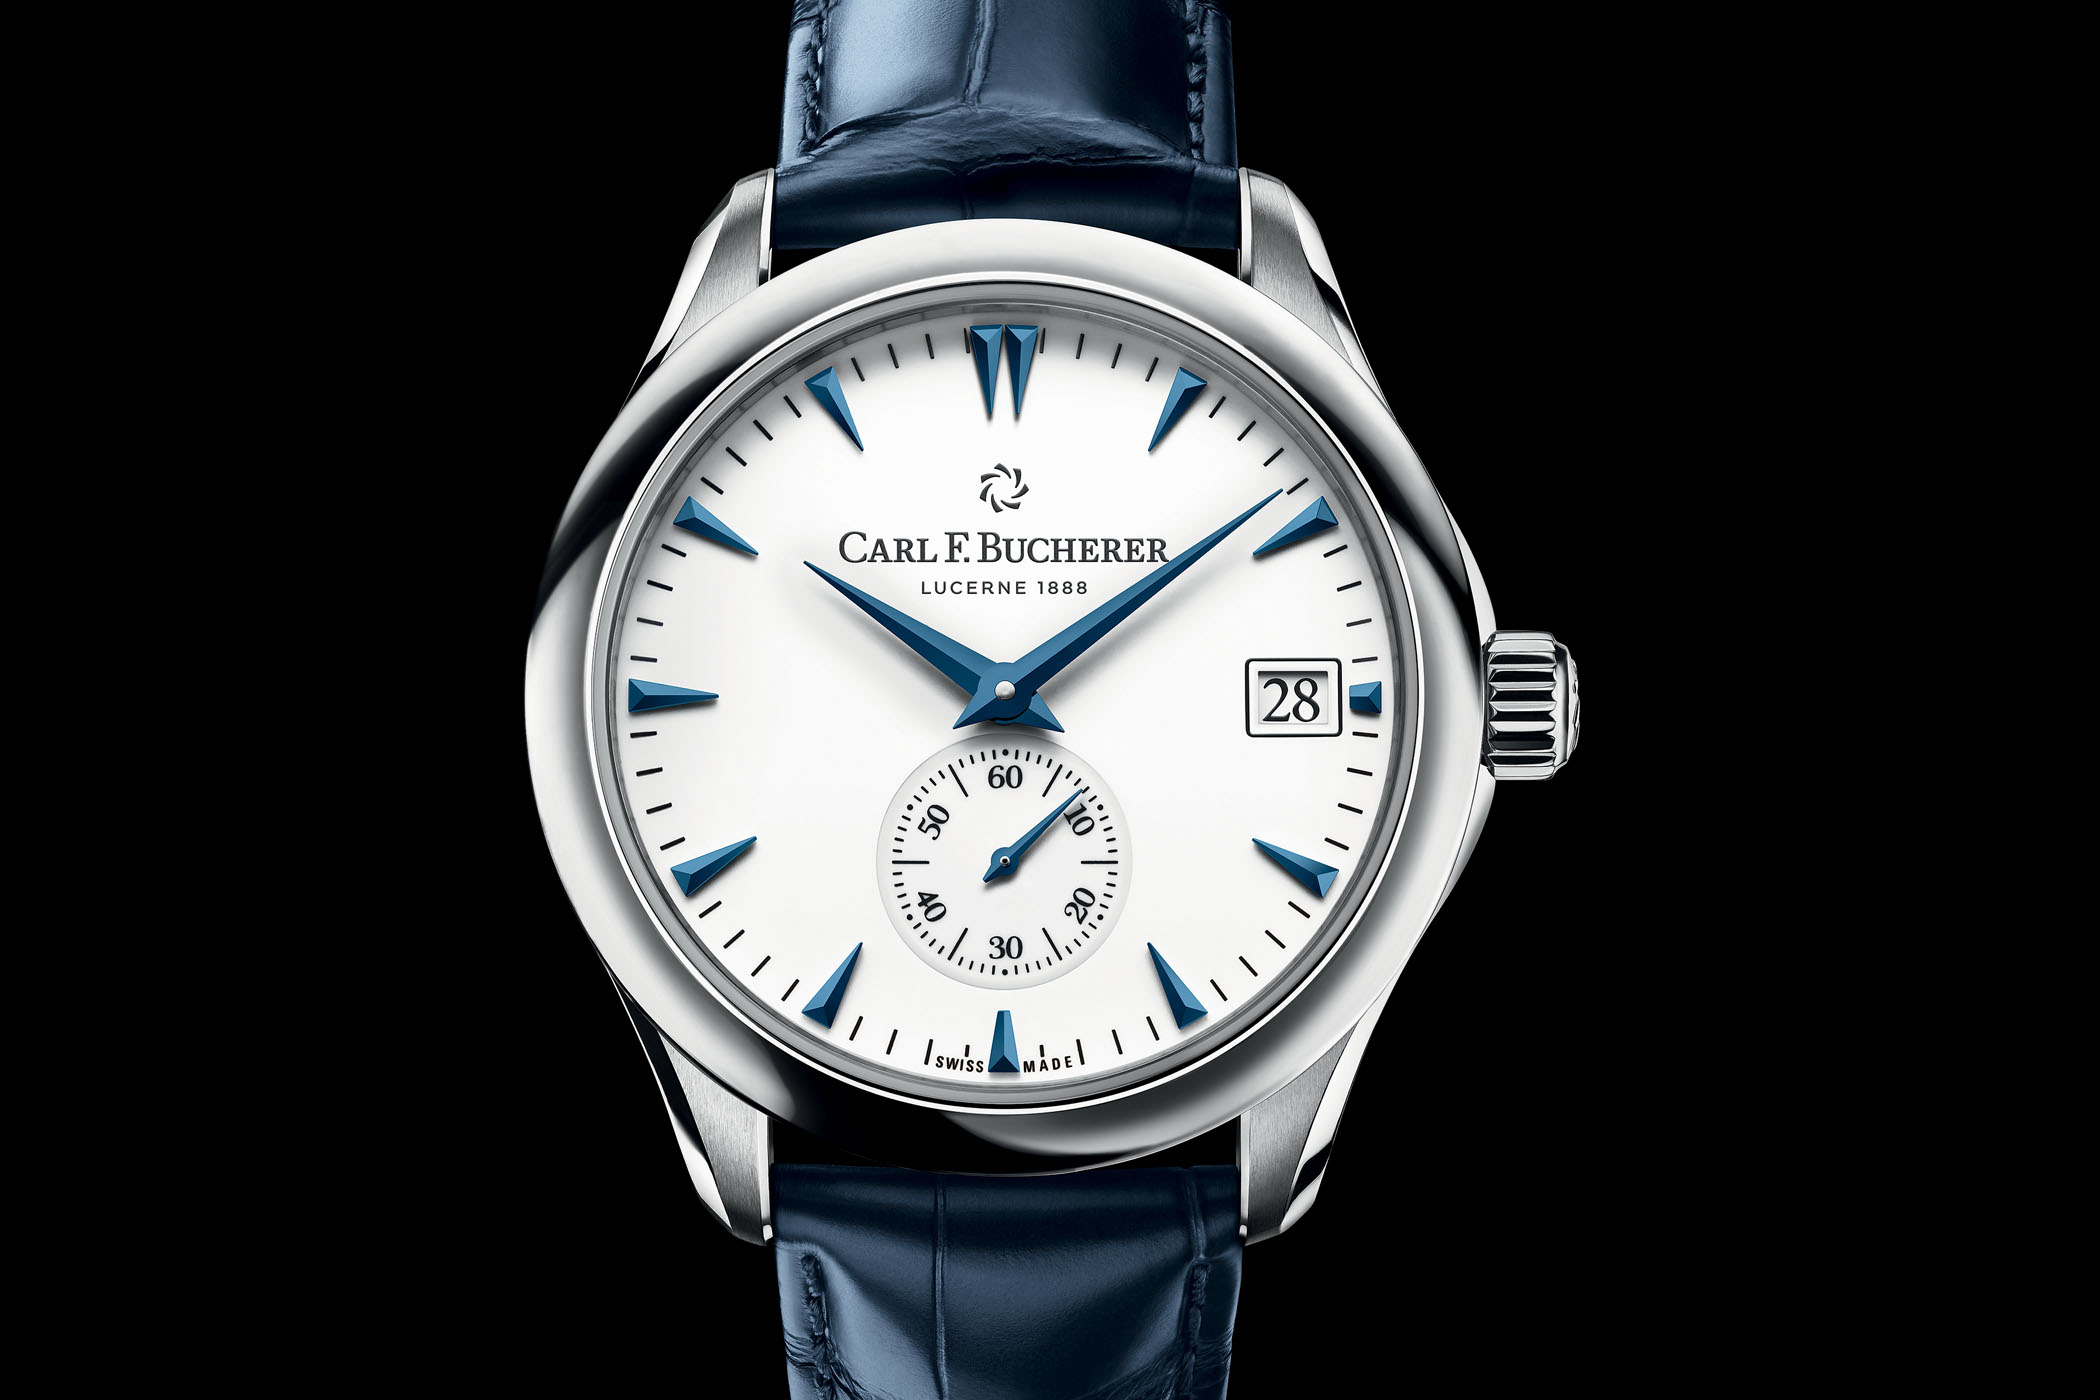 Carl F. Bucherer Manero Peripheral Only Watch 2017 Unique Piece